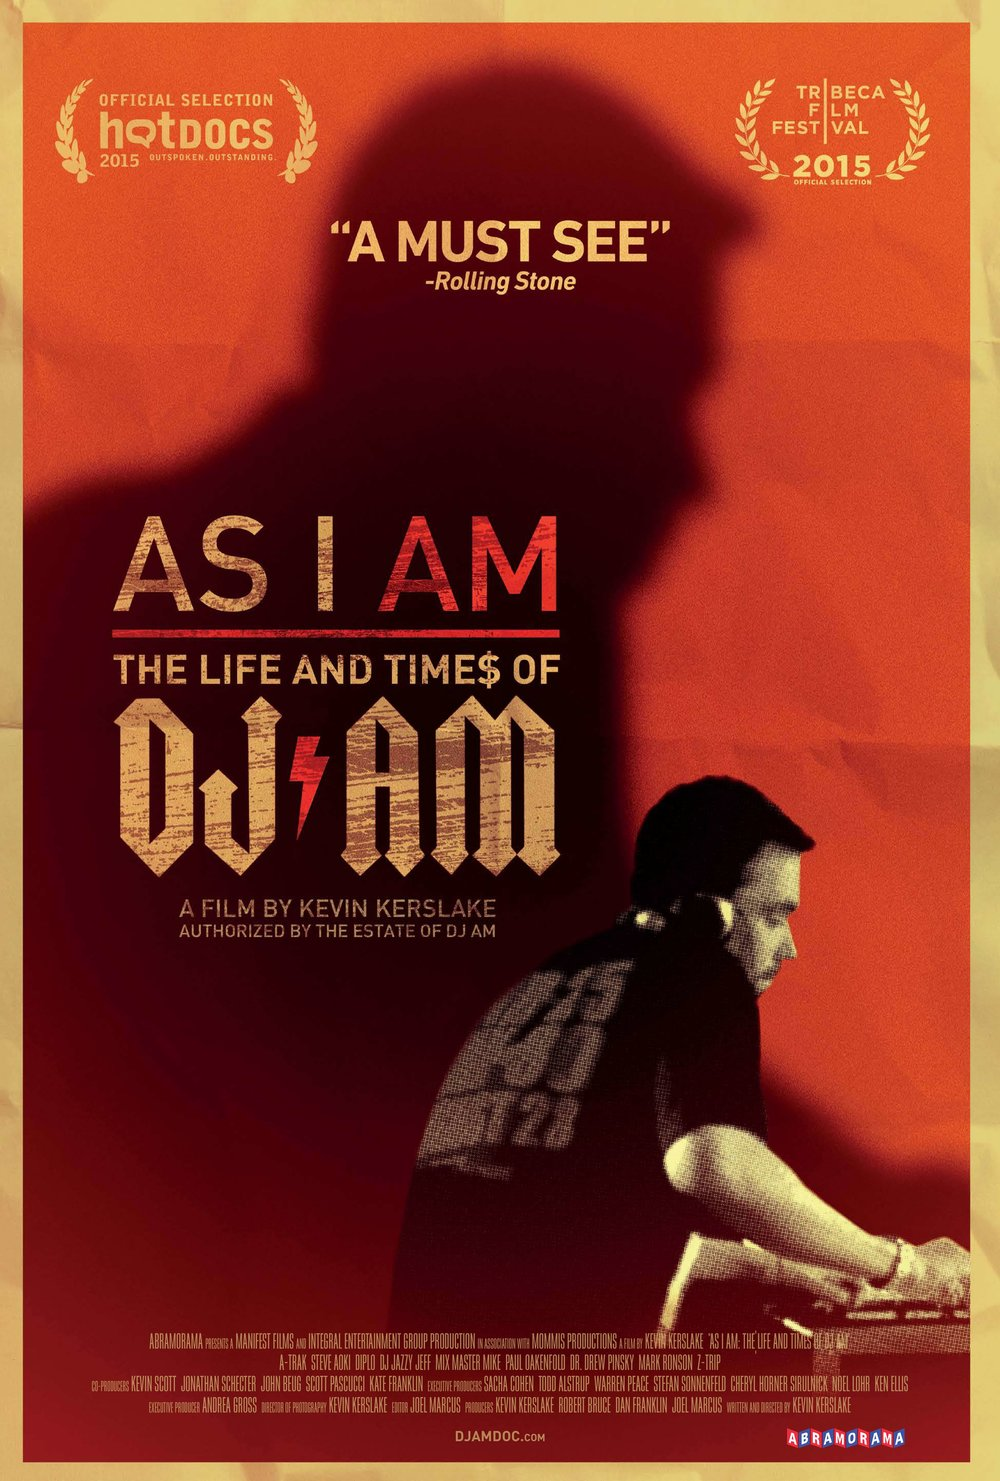 As I Am - The Life And Time$ Of DJ AM - poster.jpg